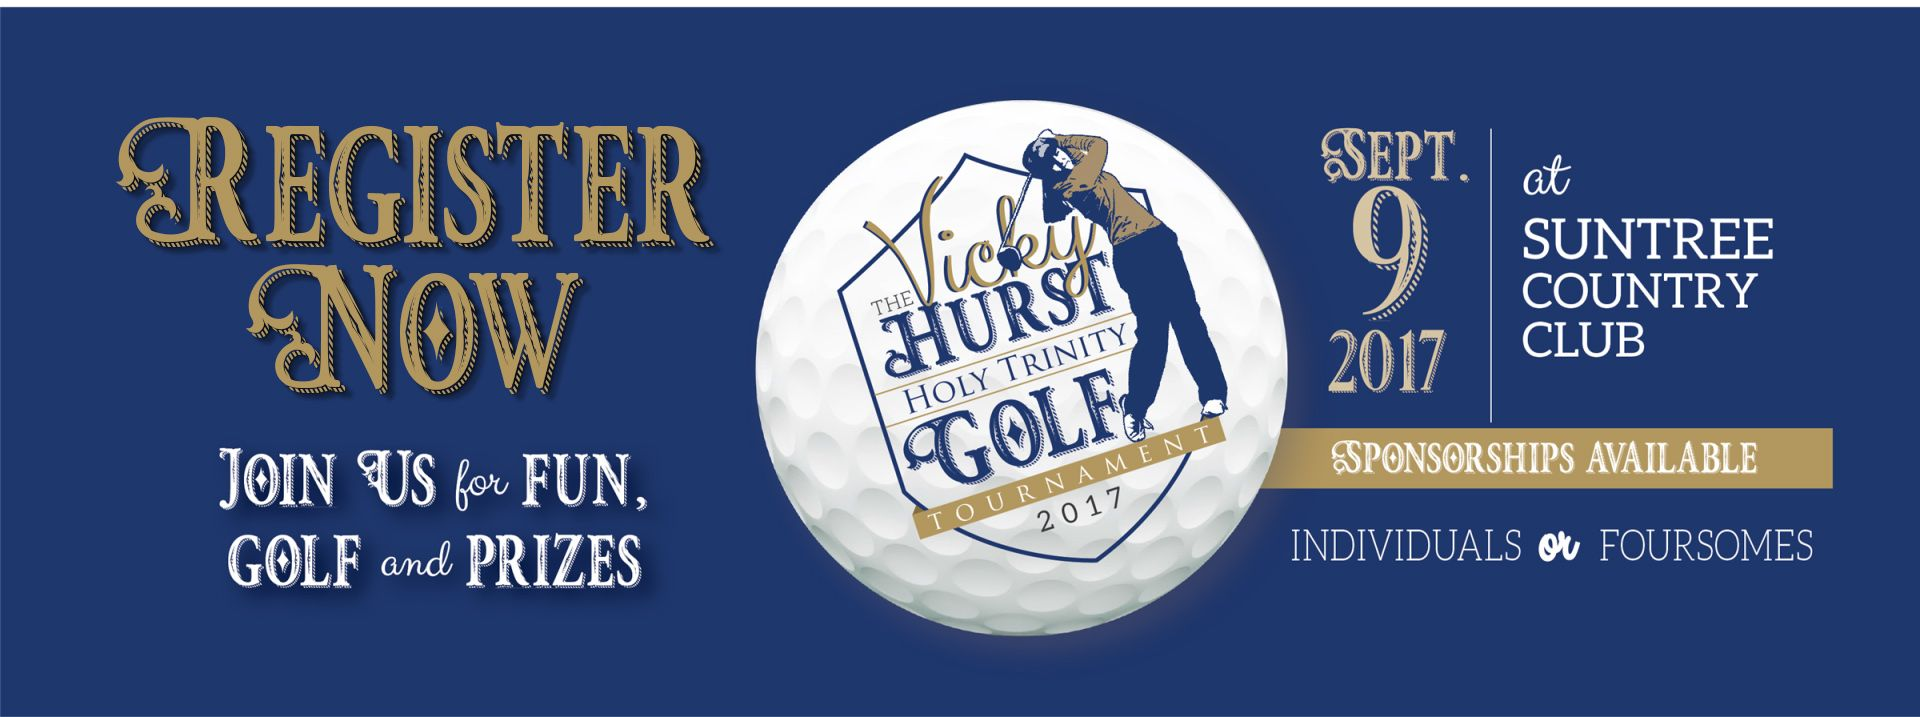 Register for Vicky Hurst Holy Trinity Golf Tournament